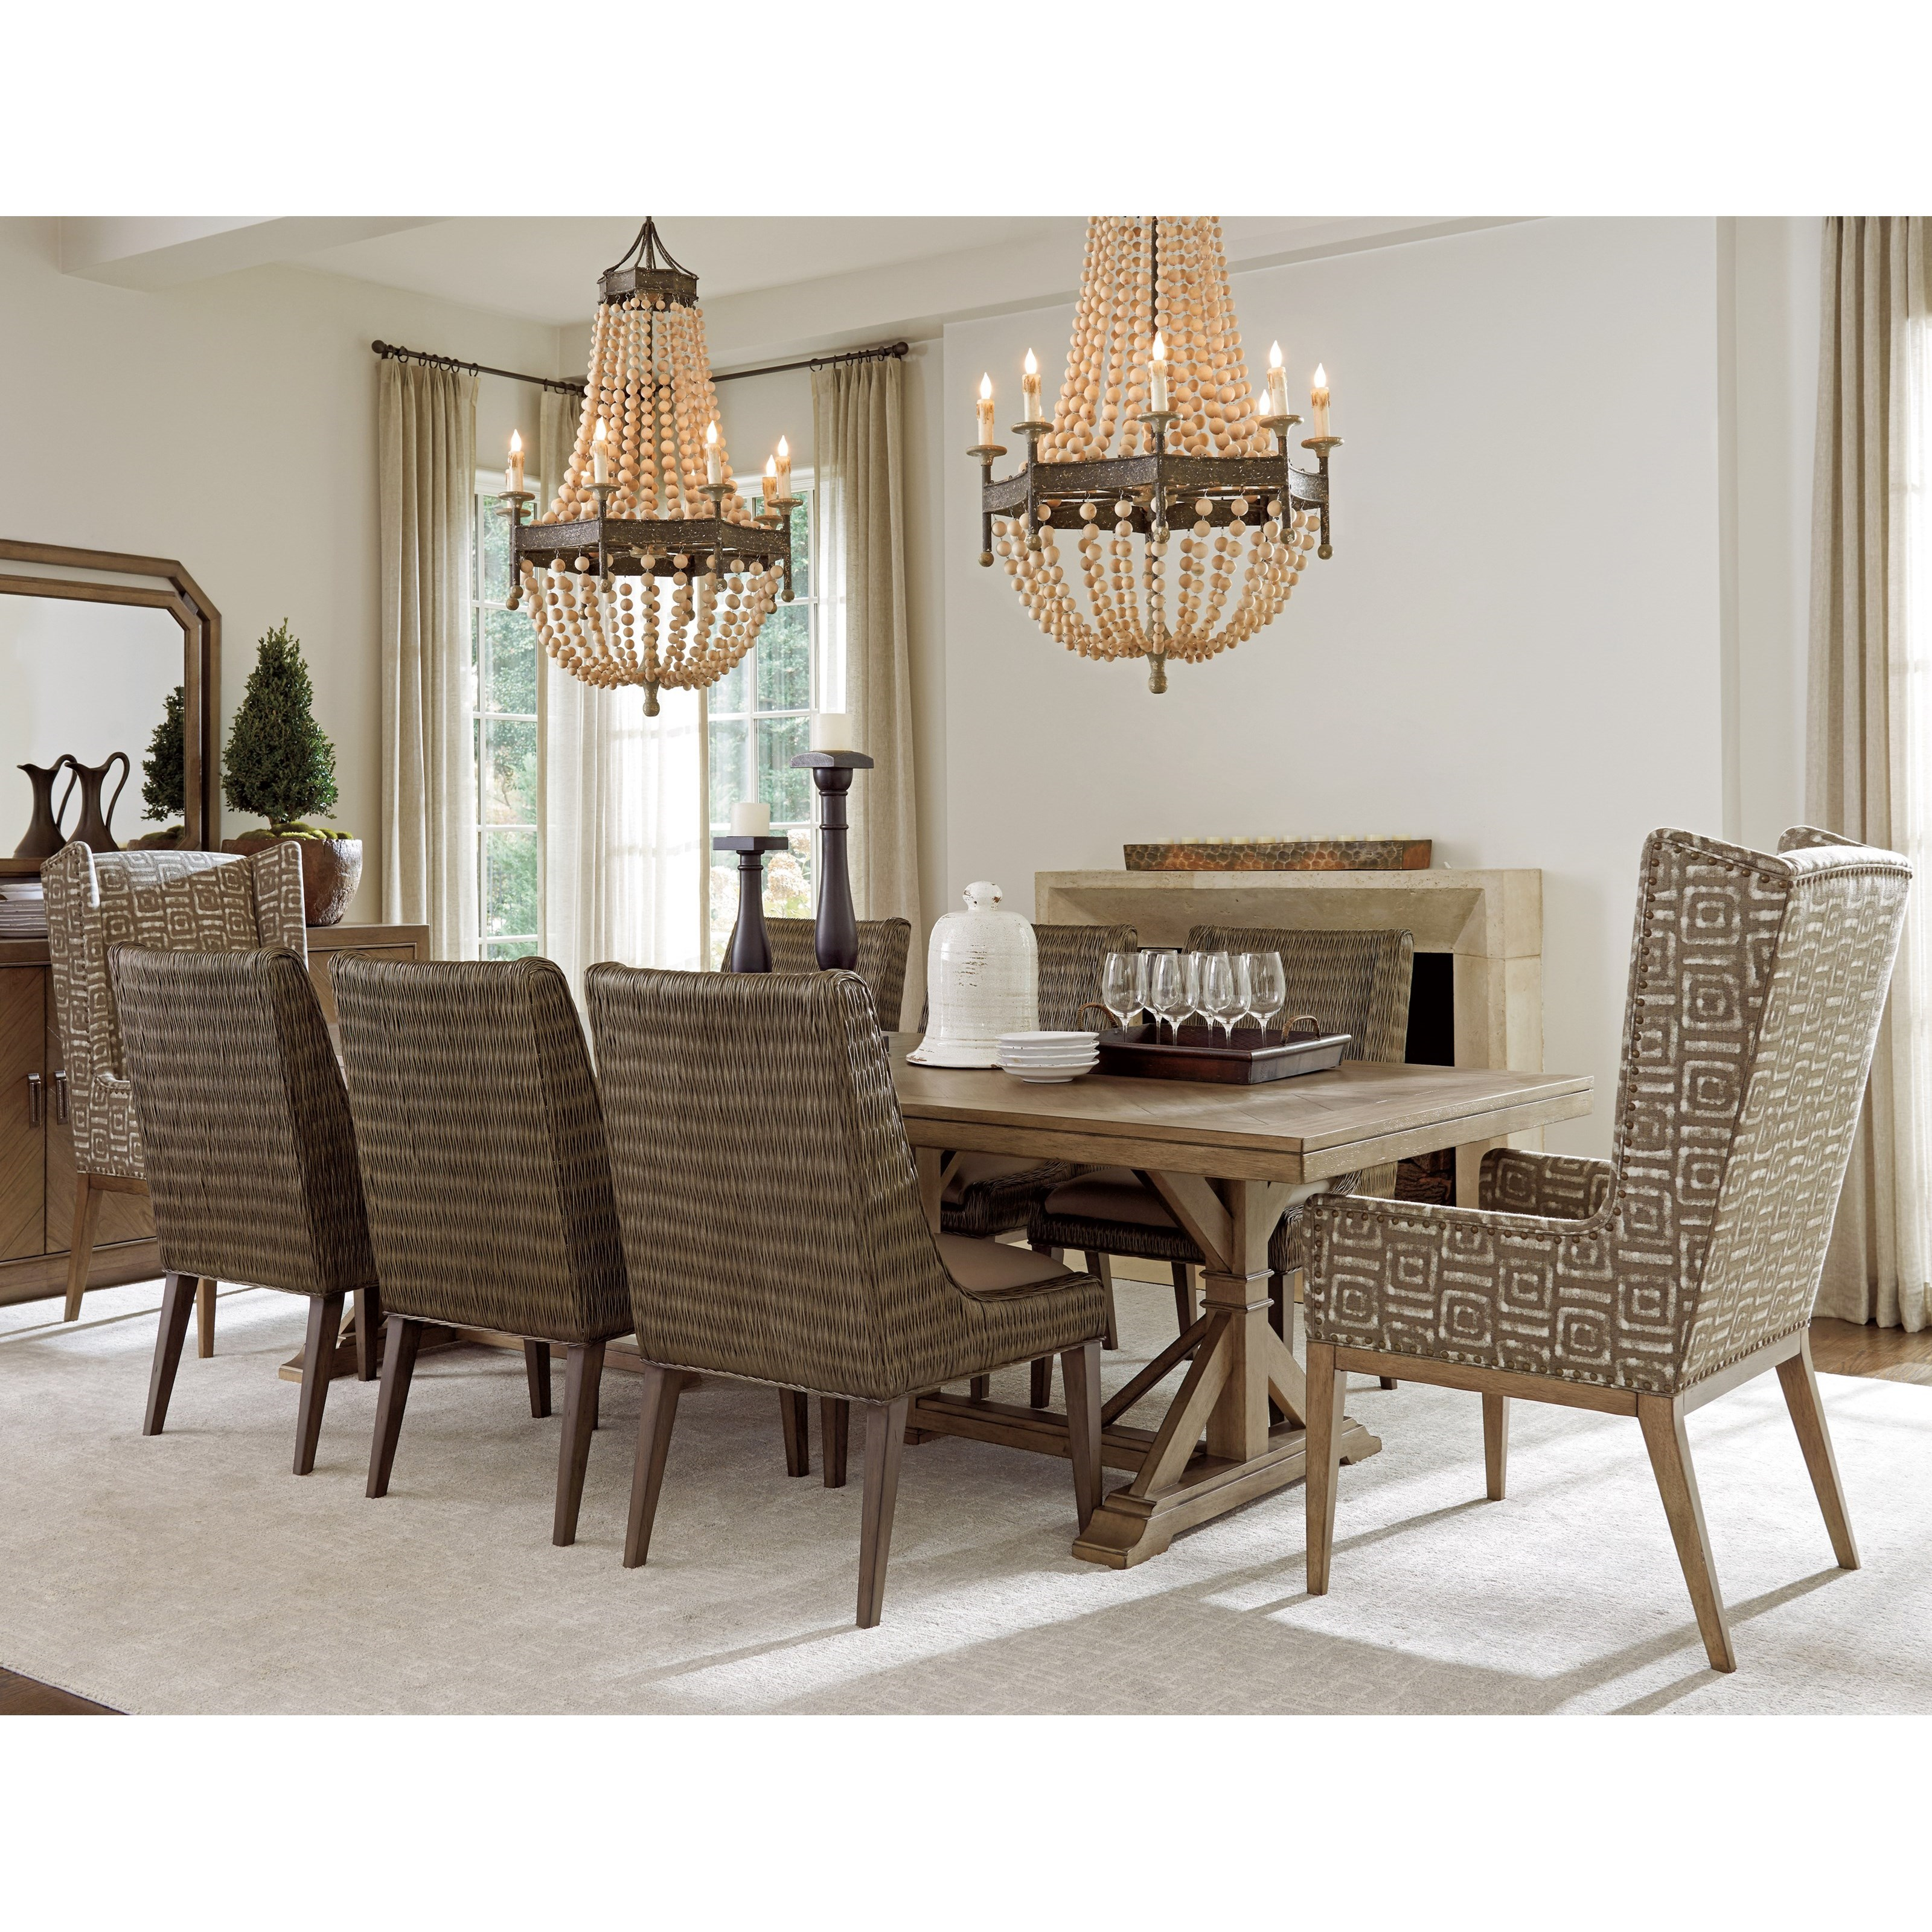 Cypress Point 9 Pc Dining Set by Tommy Bahama Home at Baer's Furniture